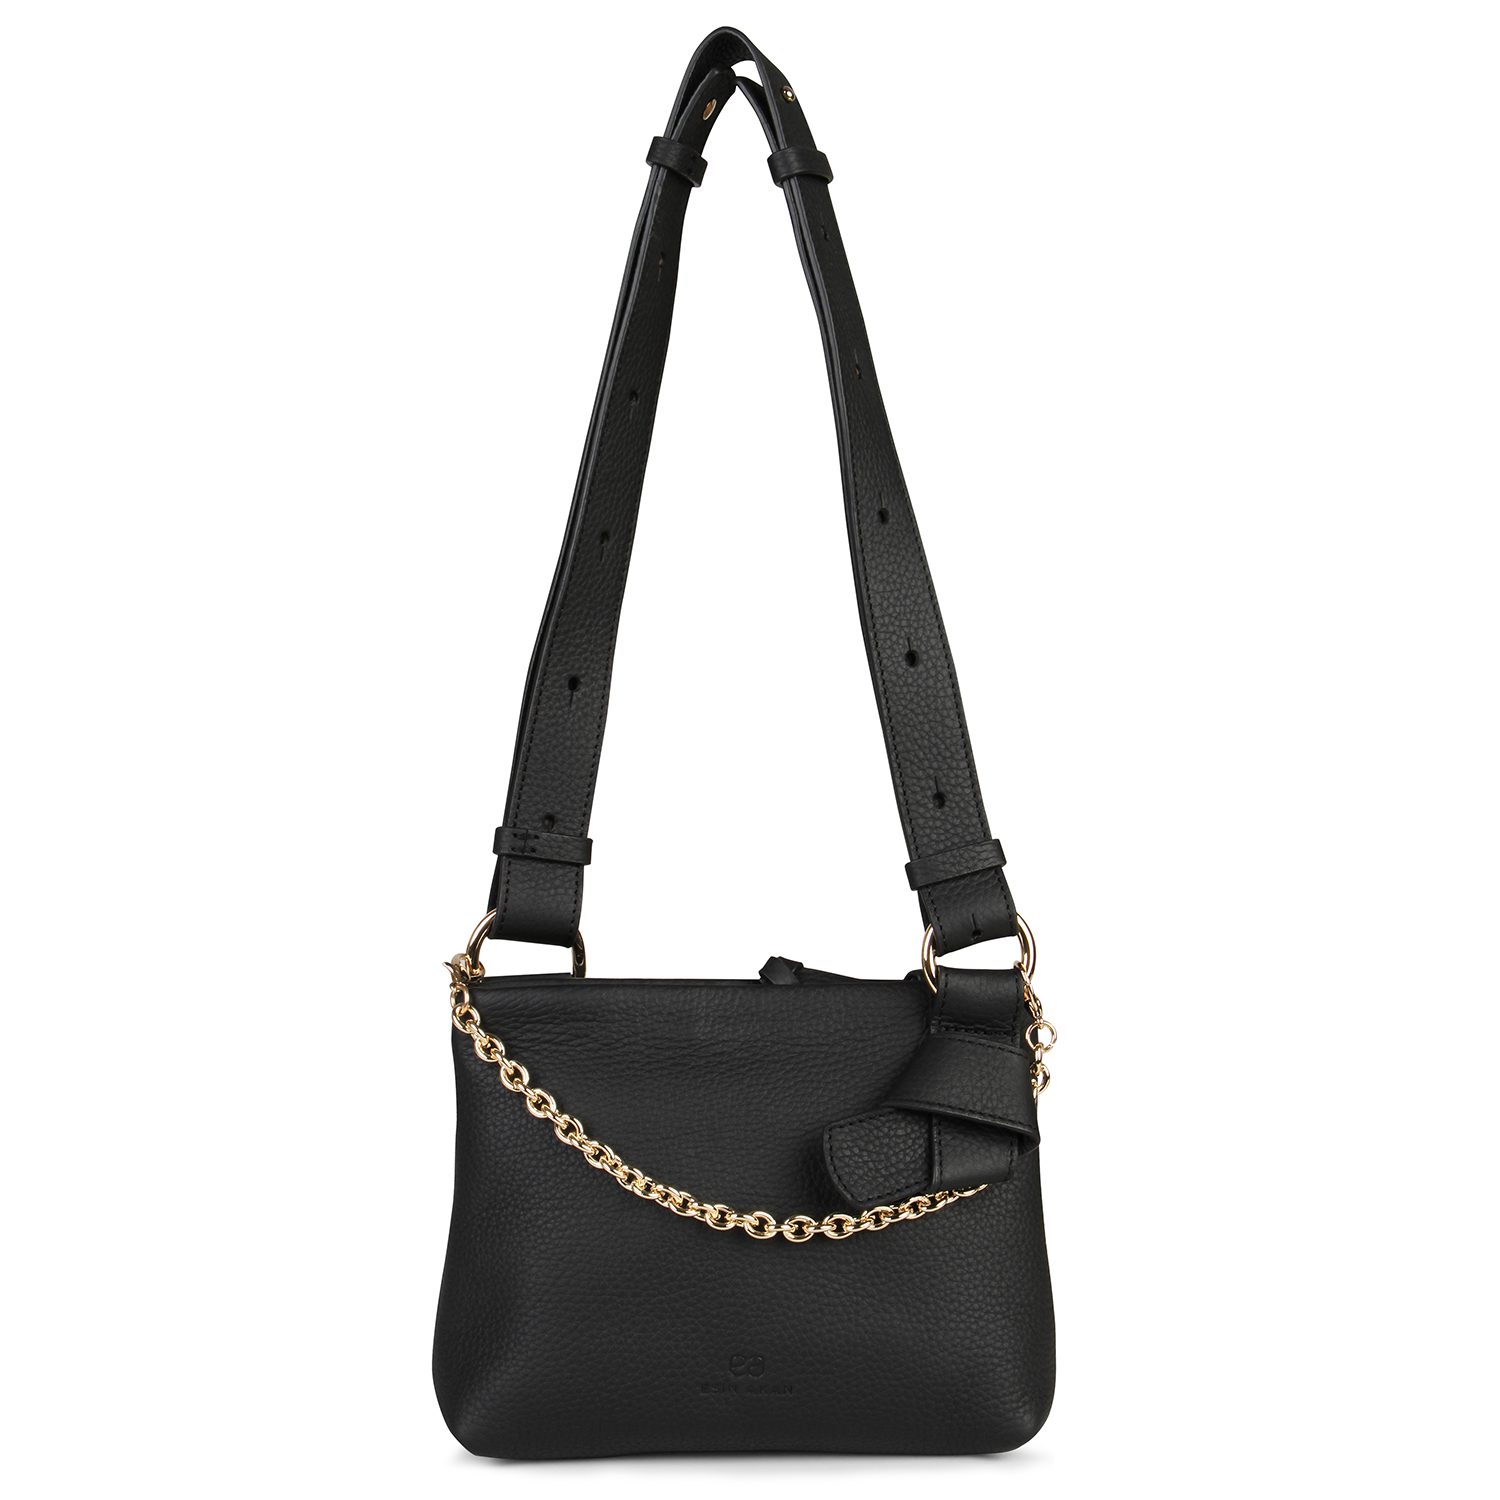 Mini Mayfair Shoulder Bag - Black by Esin Akan on curated-crowd.com